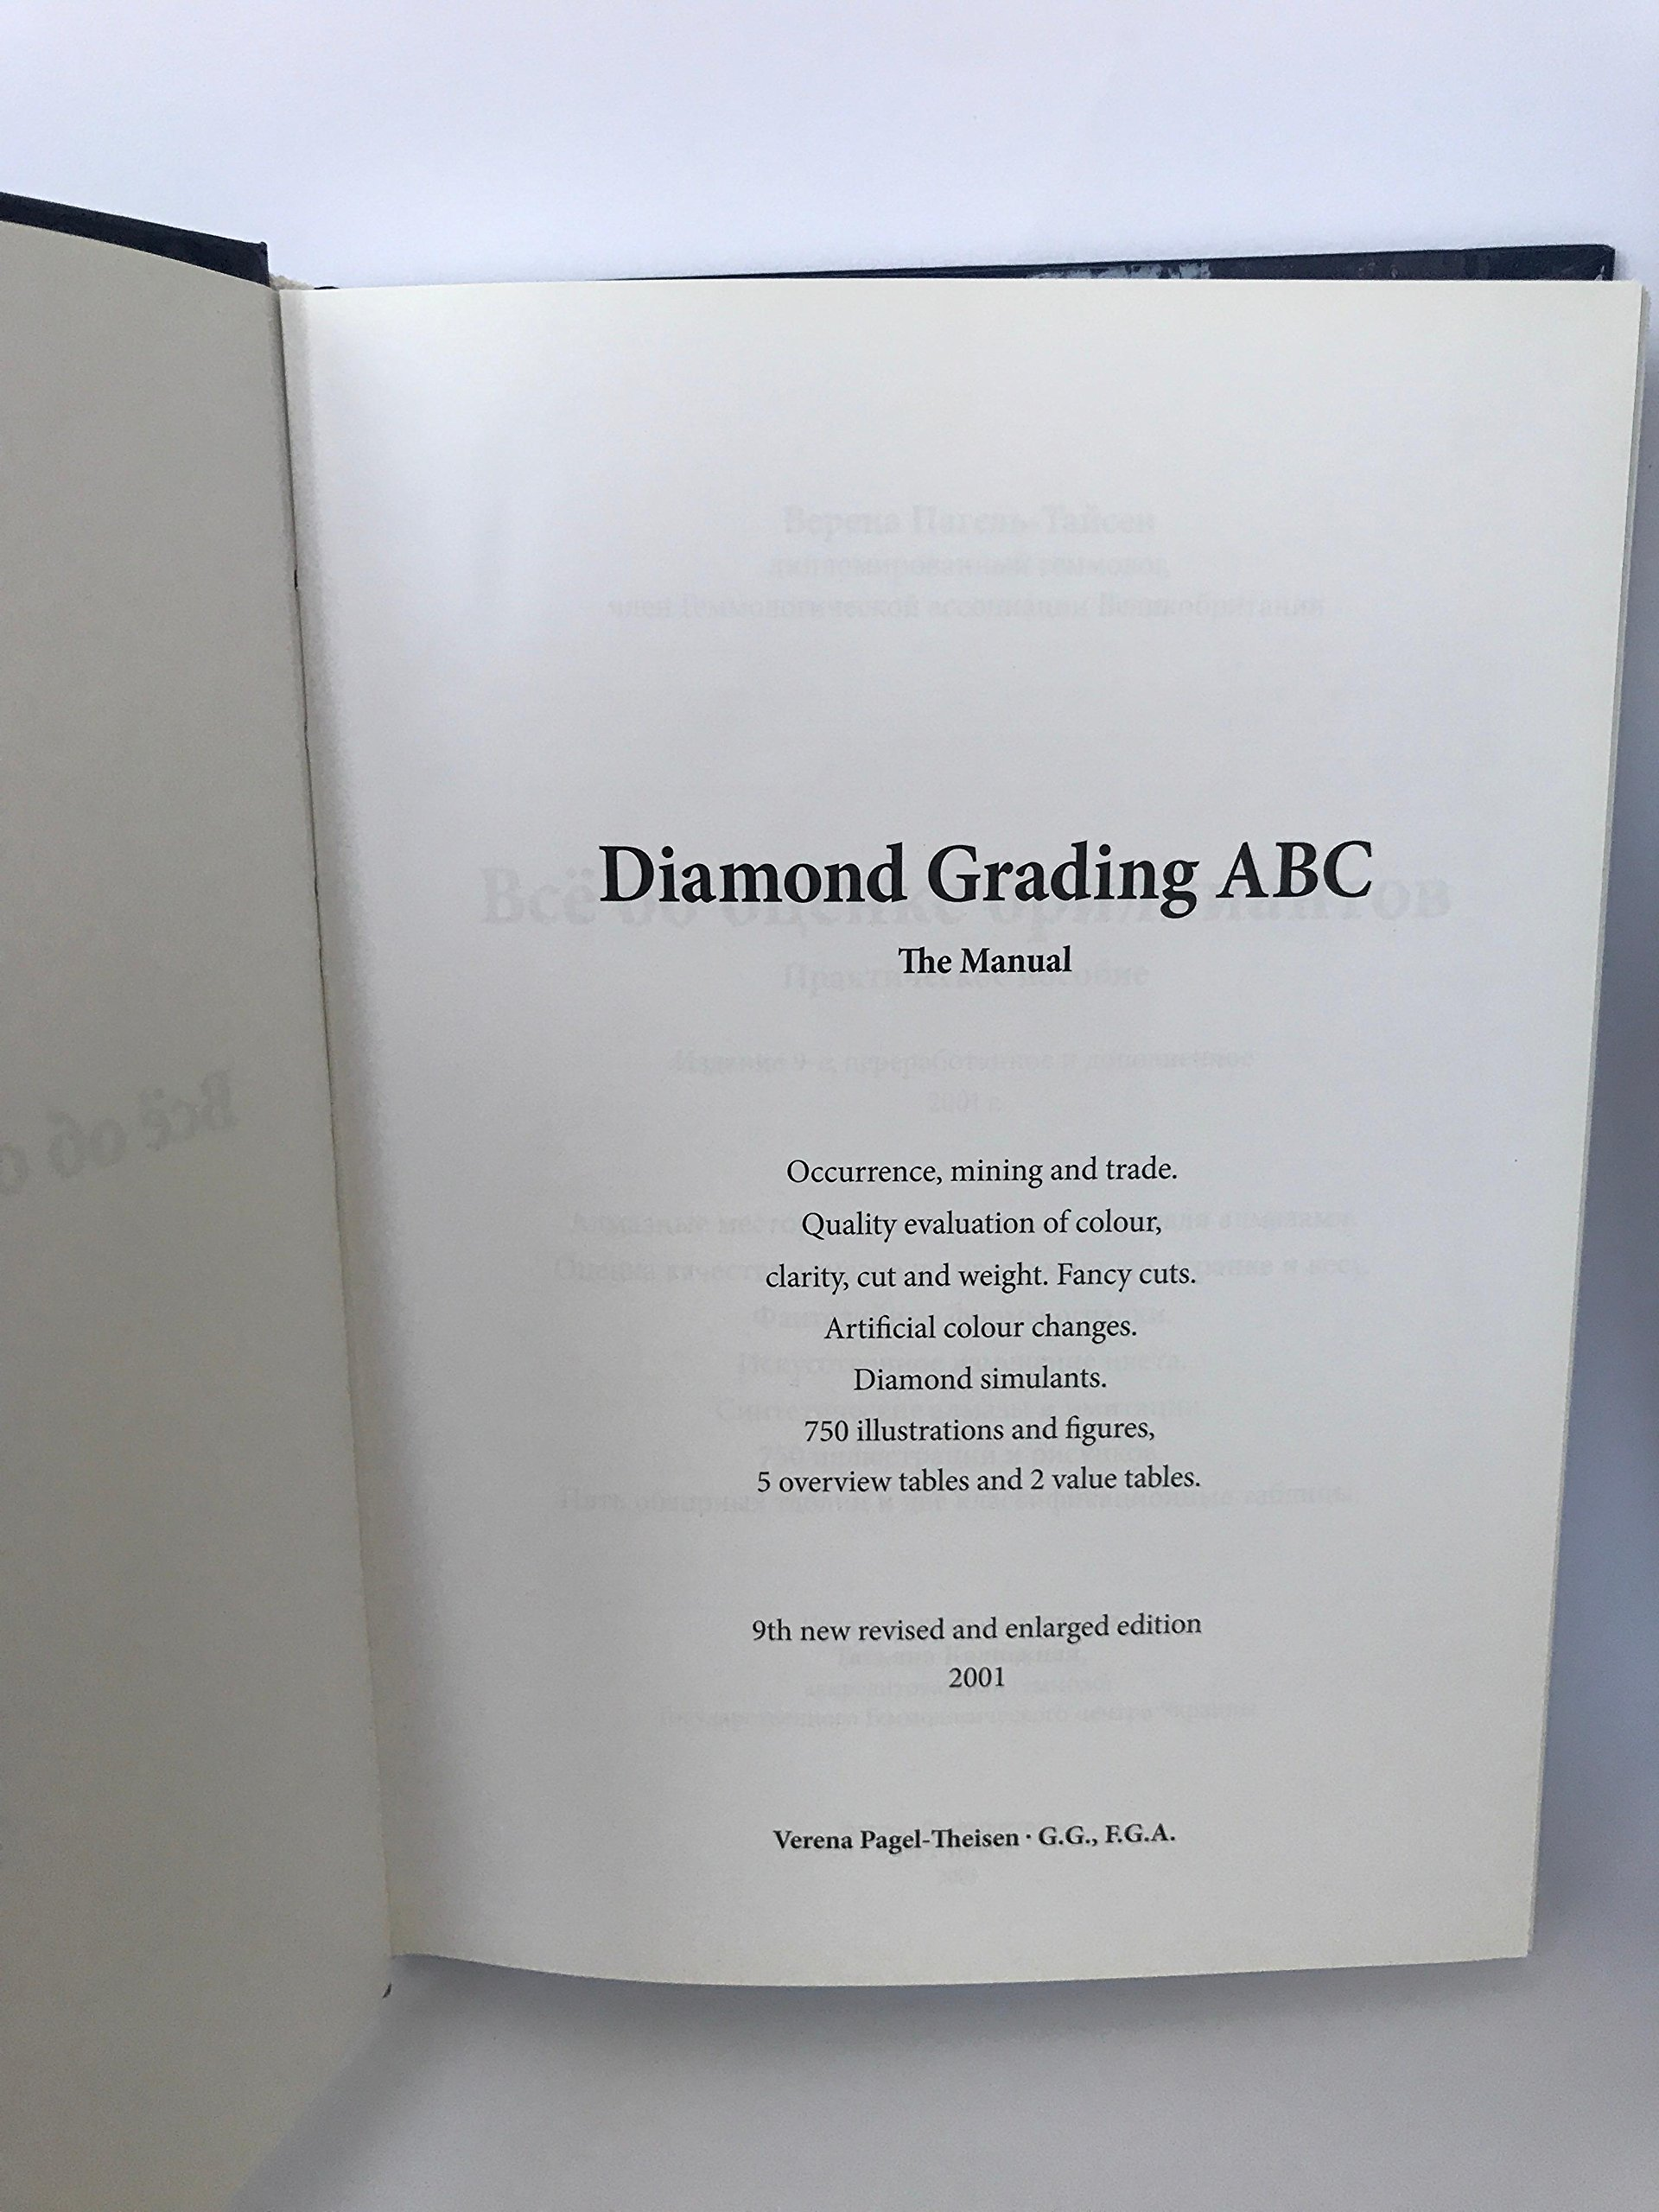 Все об оценке бриллиантов практическое пособие 2008, Diamond Grading ABC  The Manual (Russian Language Edition): Verena Pagel-Theisen, Tatiana  Kaluzhnaya: ...